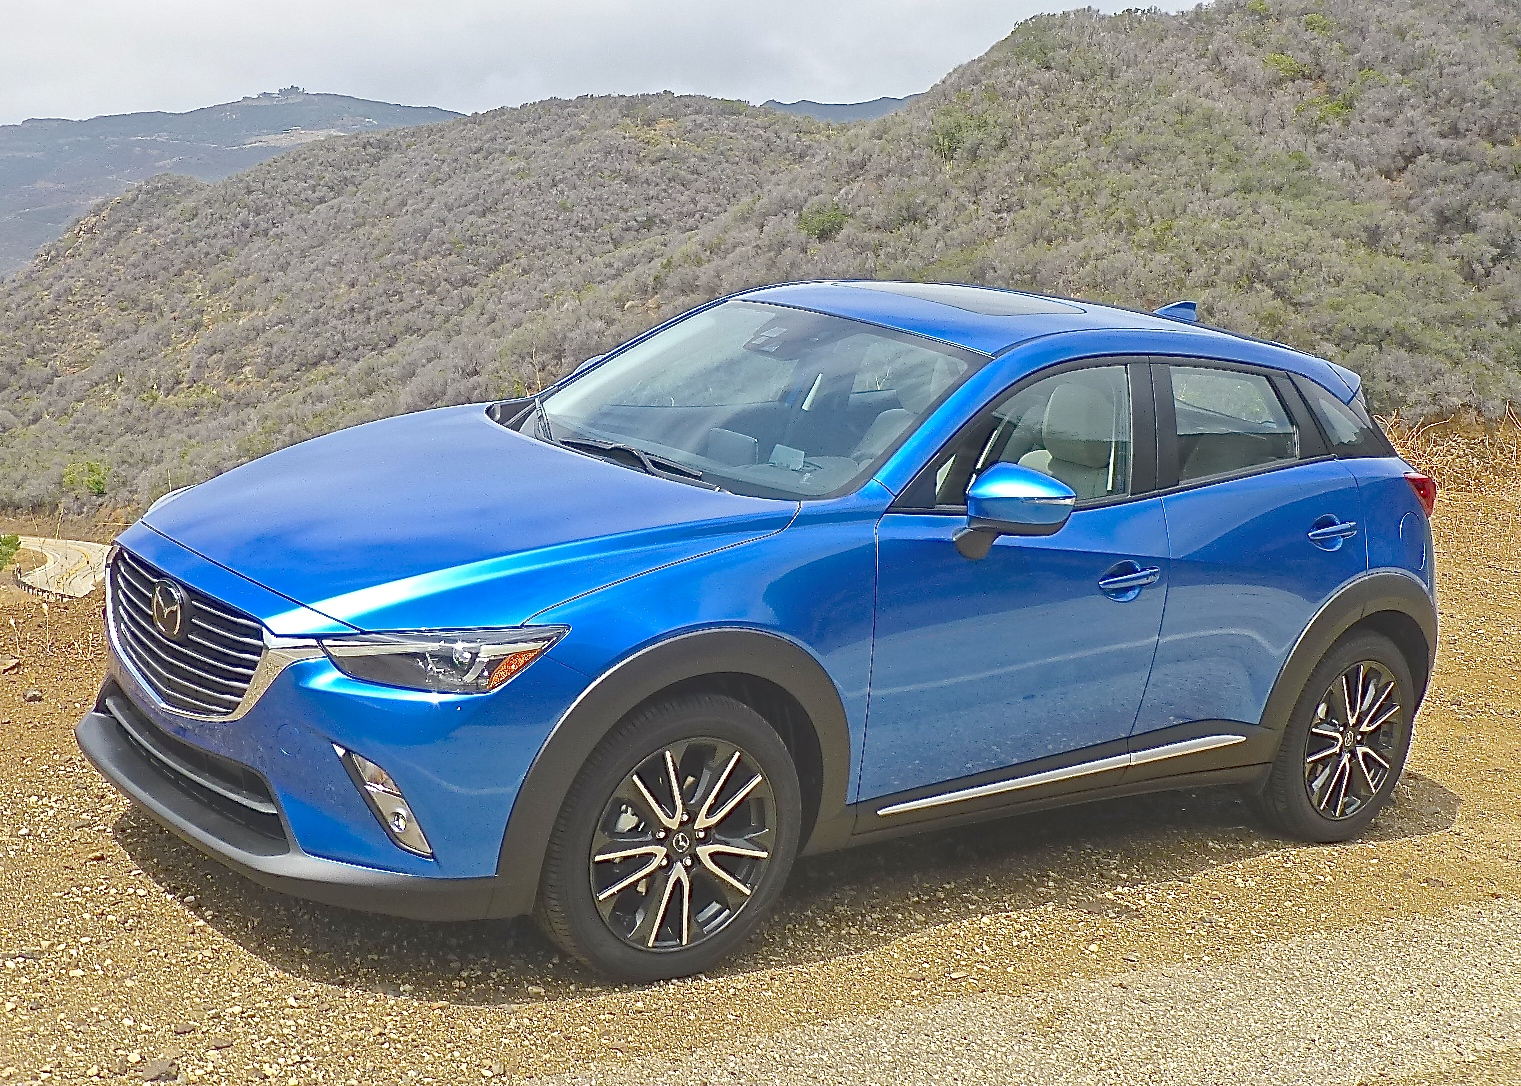 Stylish contours and high-tech features set the 2016 CX-3 atop the new sporty SUV segment..